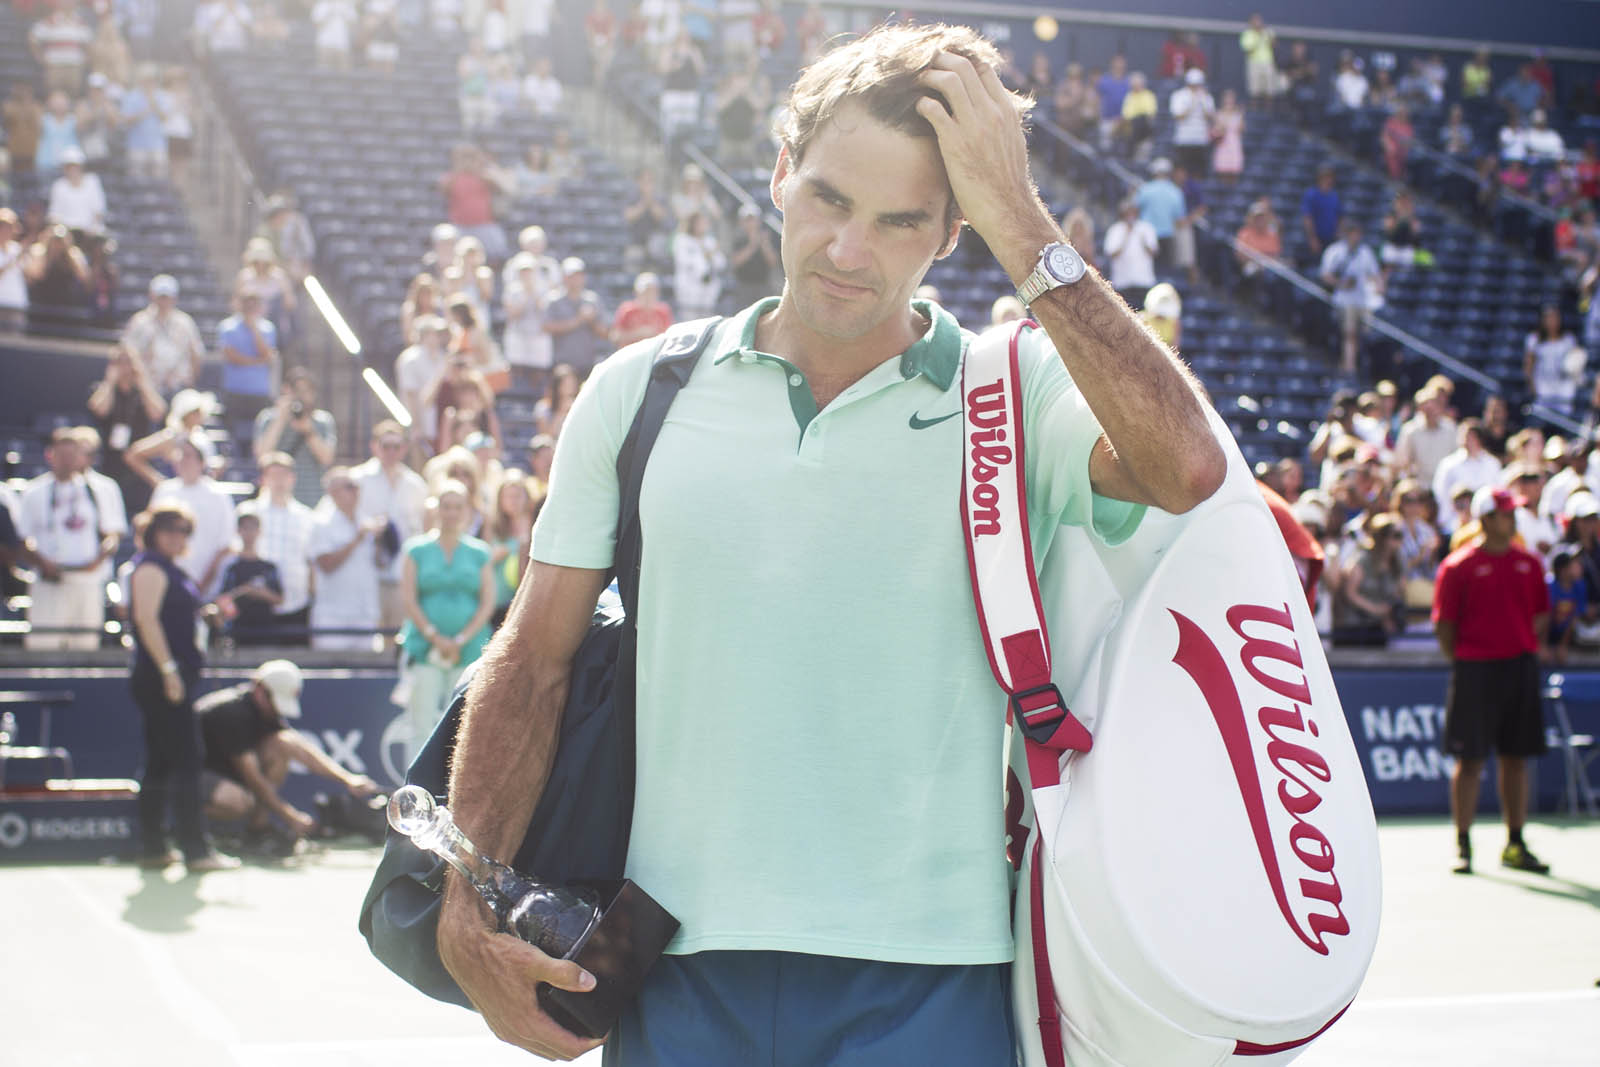 The best photos from the Rogers Cup, final day